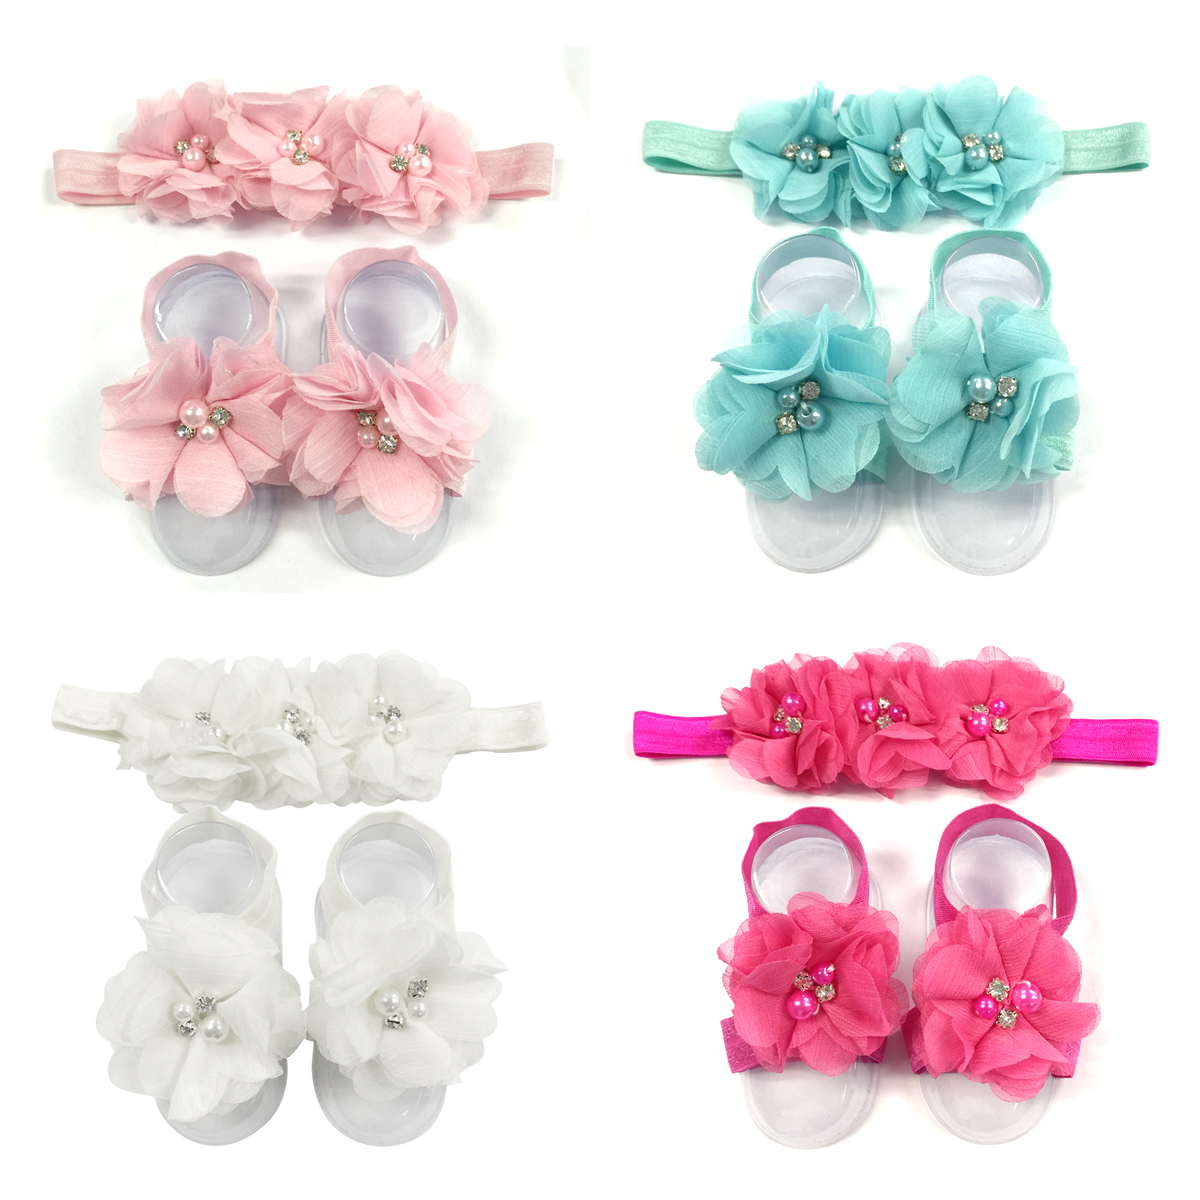 Wrapables® Shabby Chic Flower Headband + Barefoot Sandals (Set of 4), Pastel